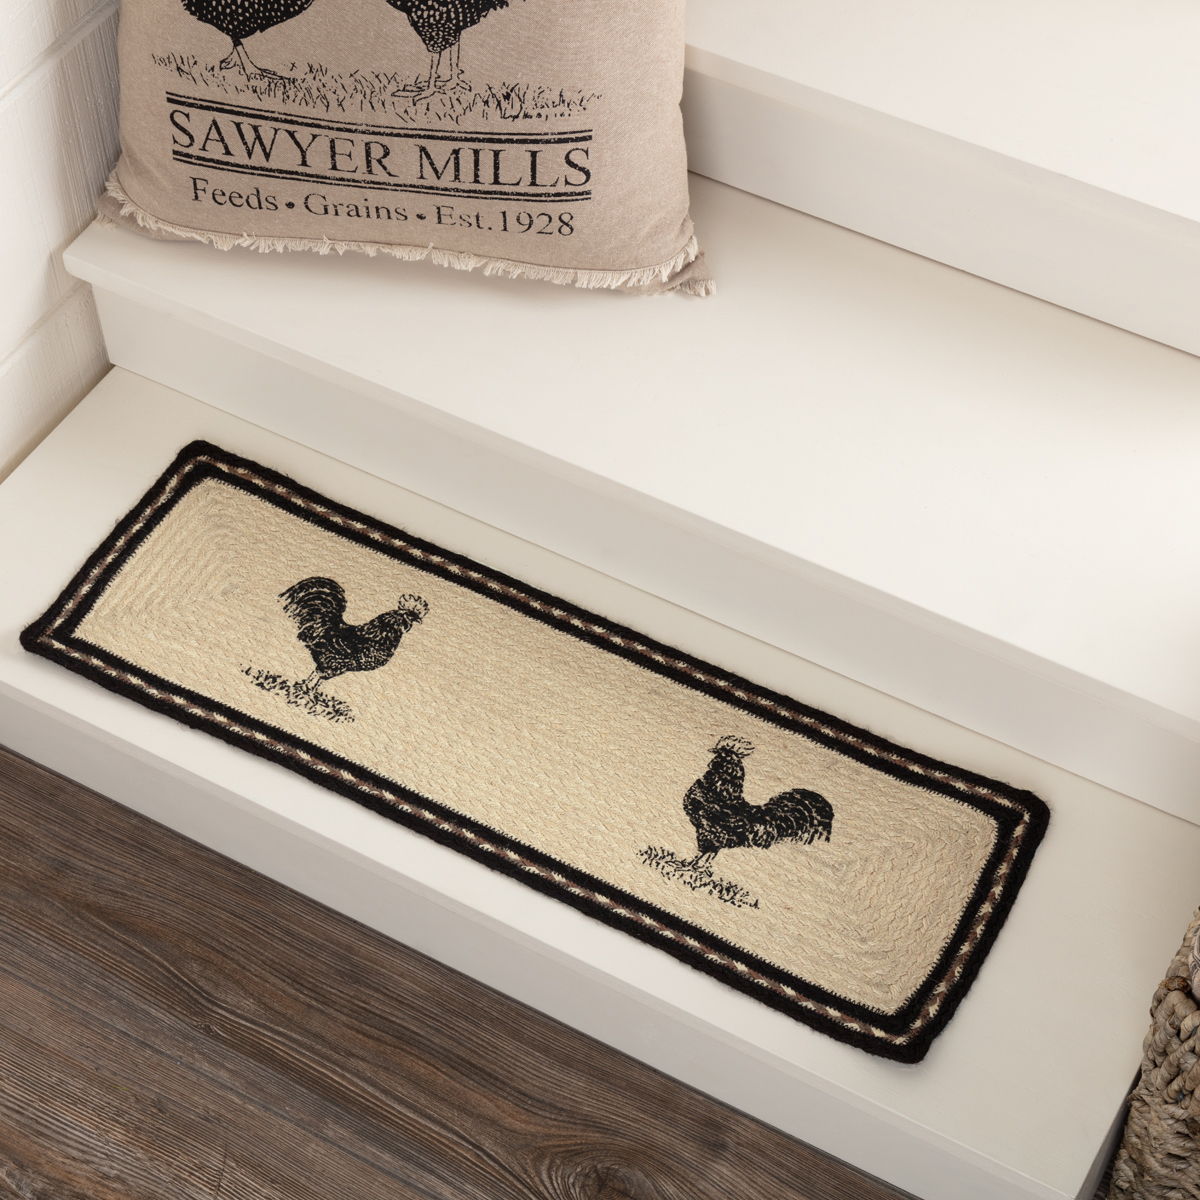 Sawyer Mill Charcoal Poultry Jute Stair Tread Rect Latex 8.5x27